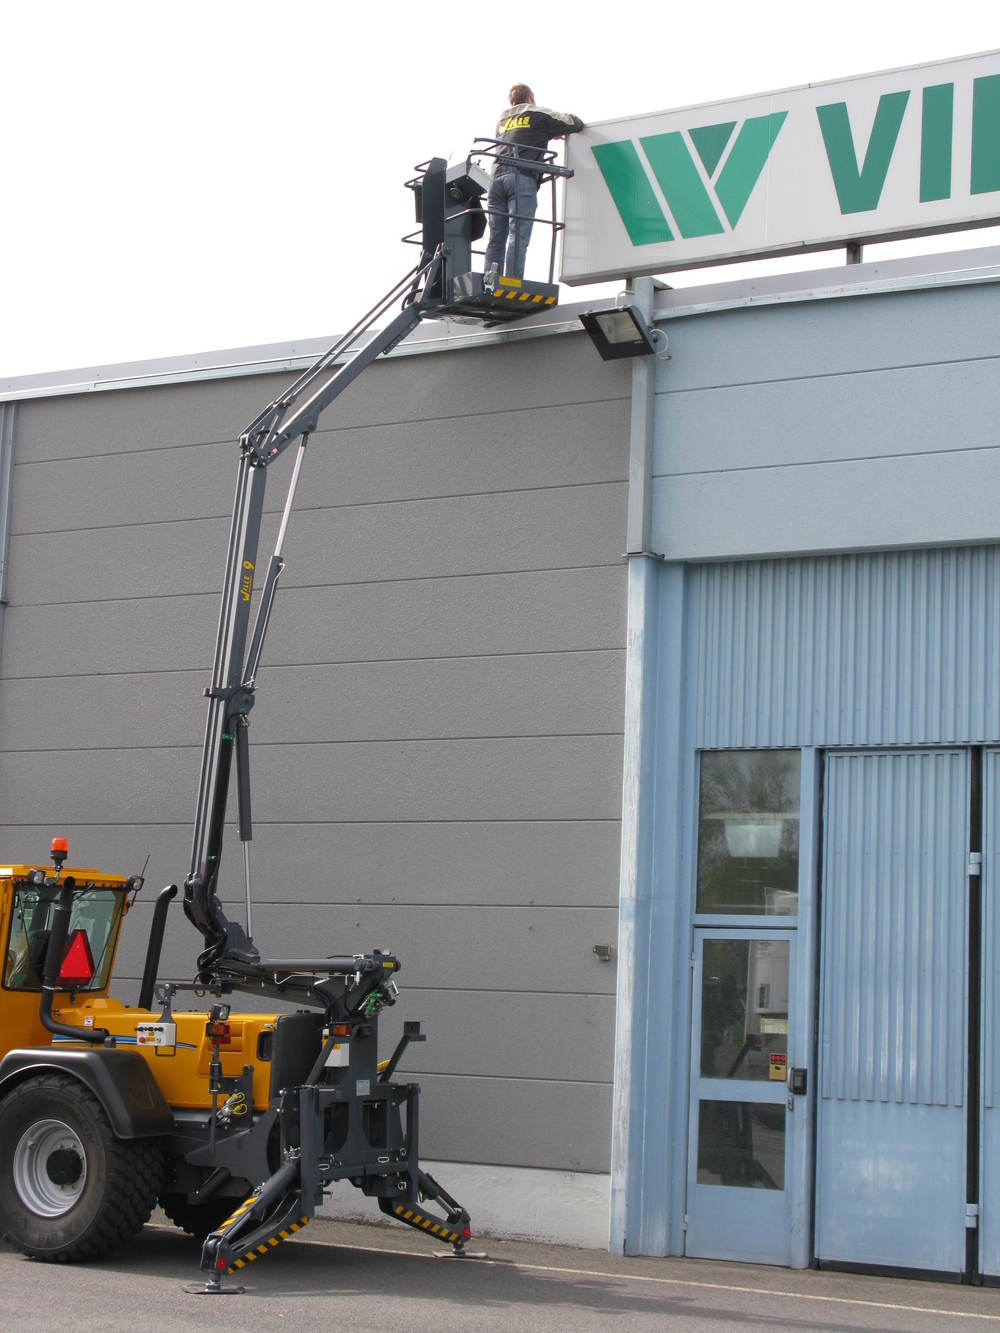 Wille 9 skylift 4.jpg